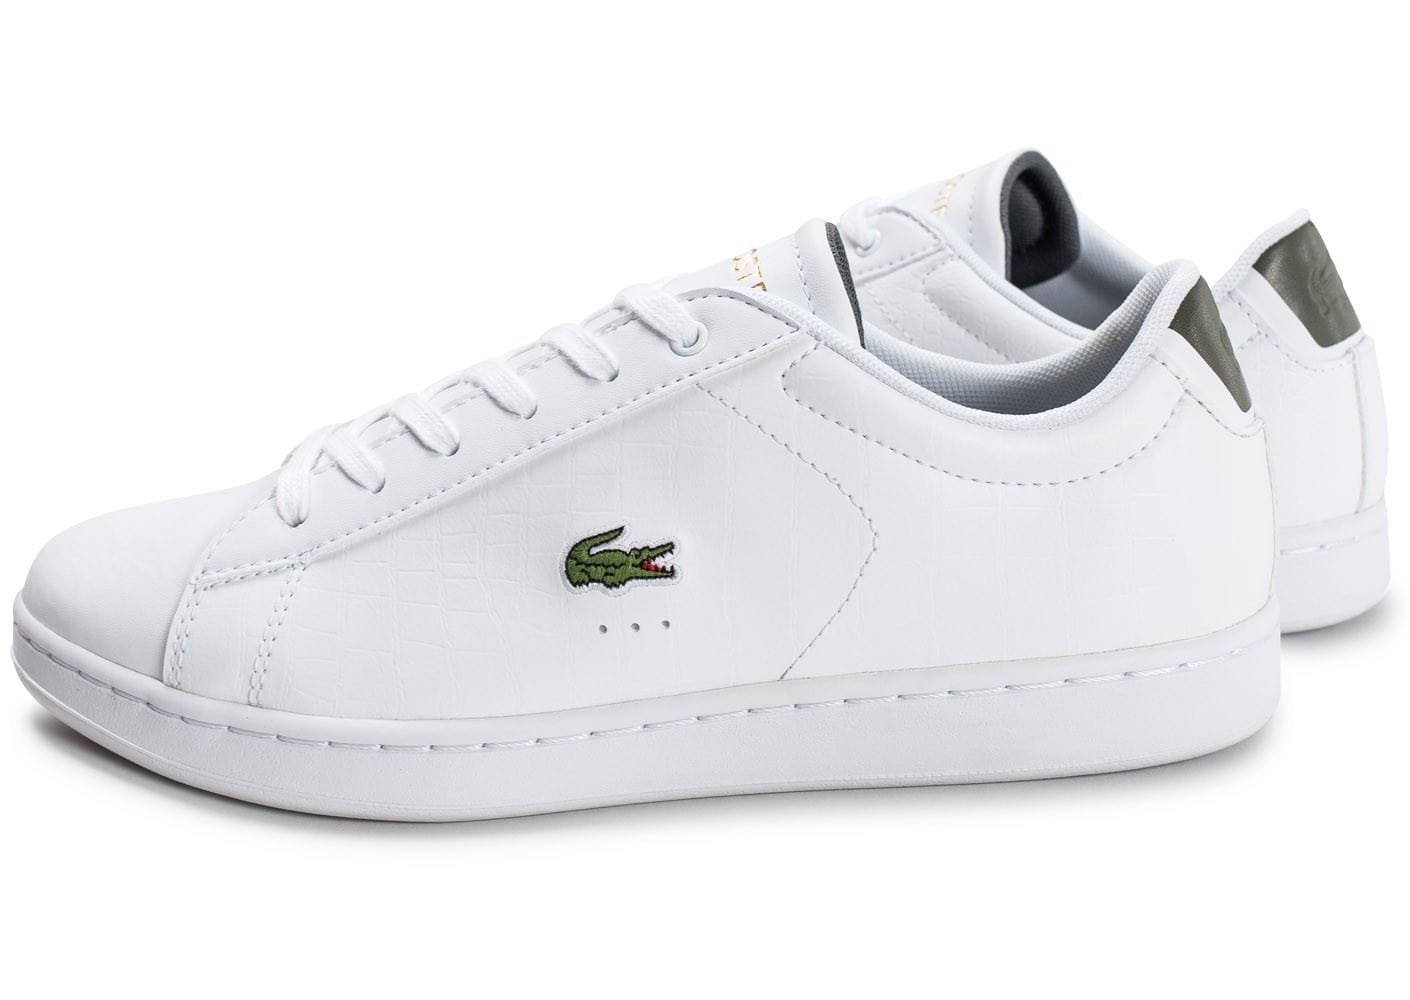 low priced sneakers 50% price Lacoste Carnaby EVO blanche et kaki - Chaussures Baskets ...